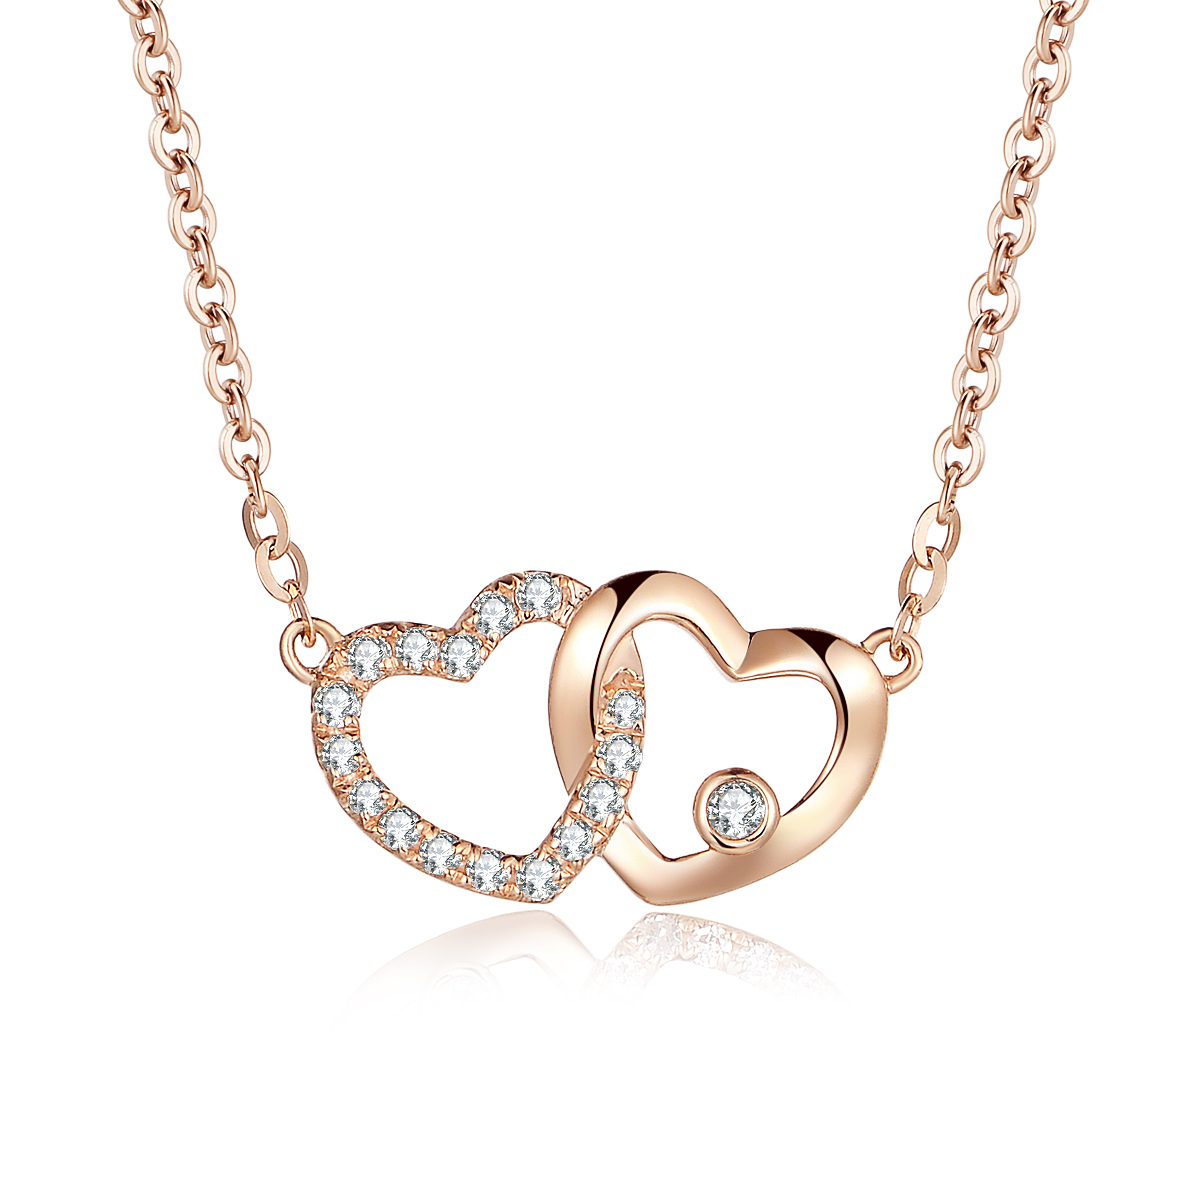 18K Gold Diamond Necklace Pendant Love Heart Lock Chain Charm Gift Simple Fashion Real Natural Pure Women Lover Wedding Party yoursfs love in circle 18k white gold plated heart shaped pendant necklace open heart engraved love for women best fashion jewel